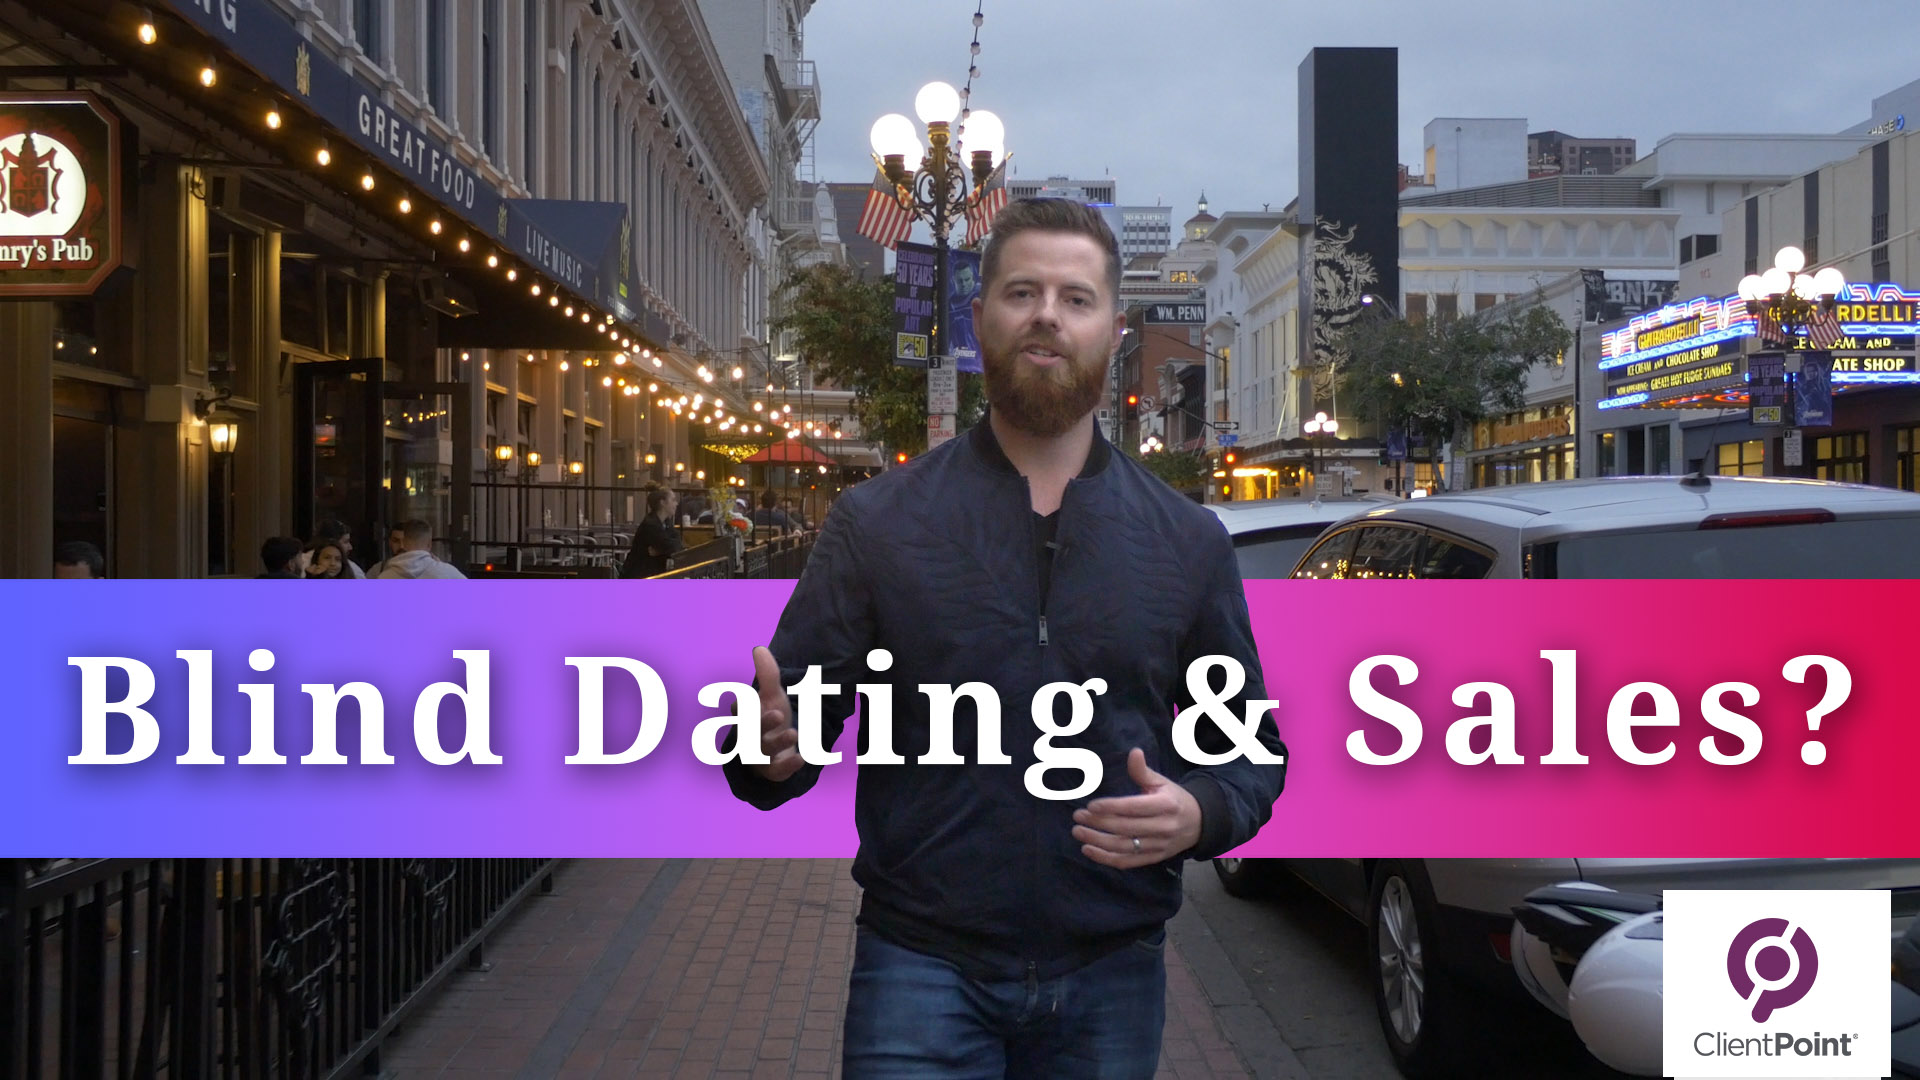 CP_Thumbnails_Blind dating and Sales-2